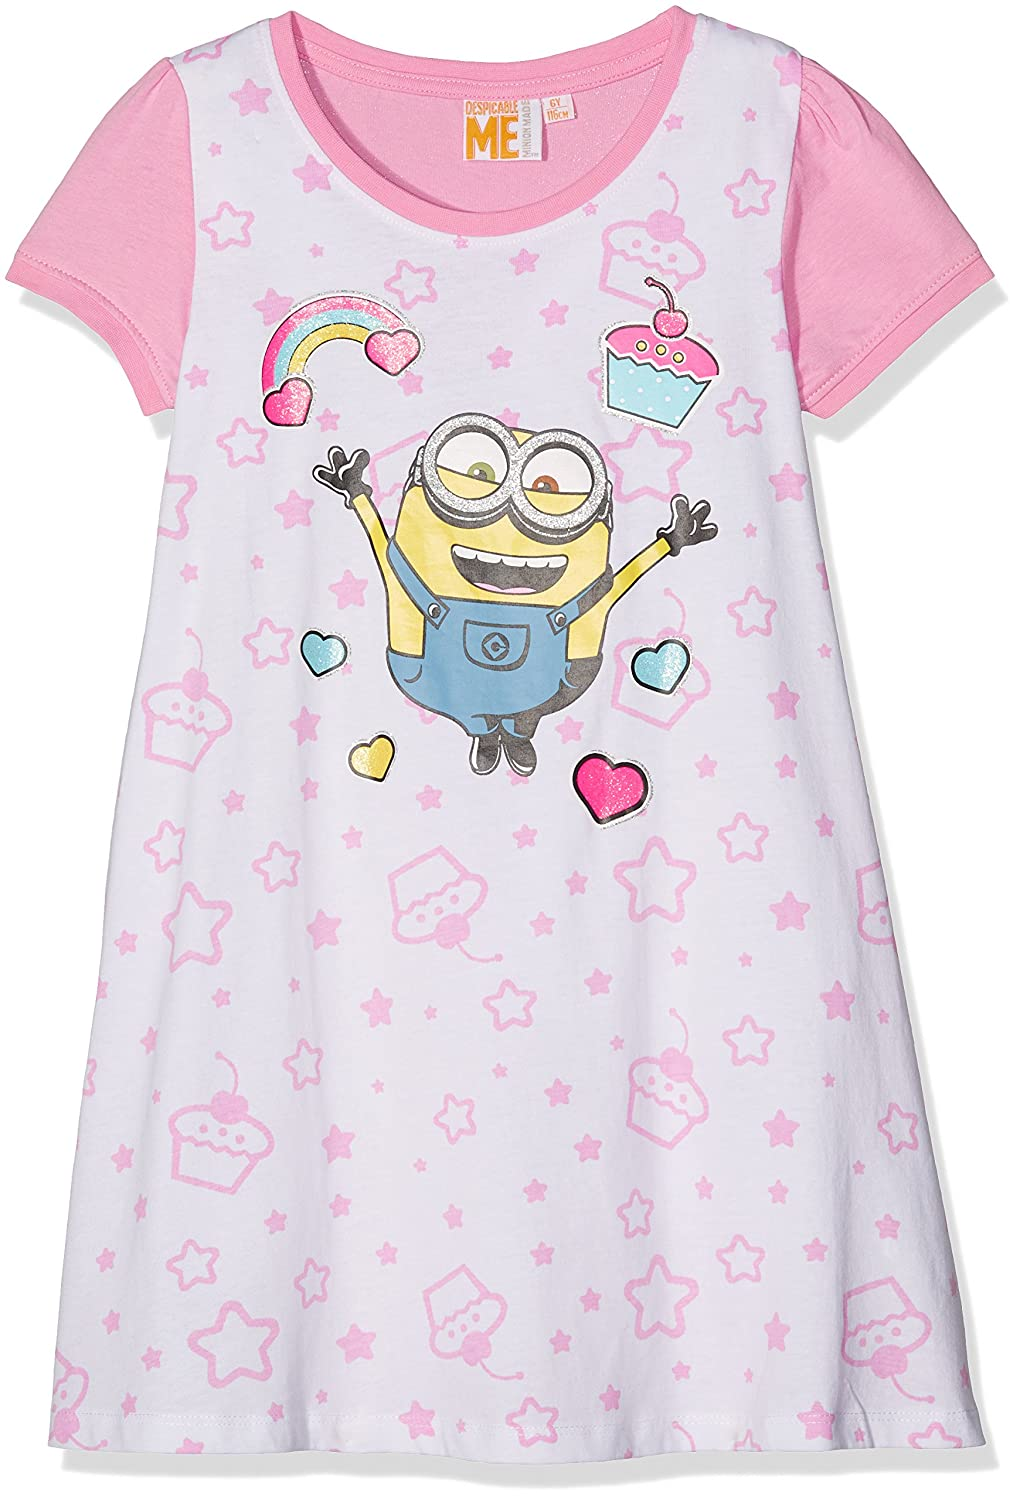 Minions Despicable Me Girls Nigthgown - white